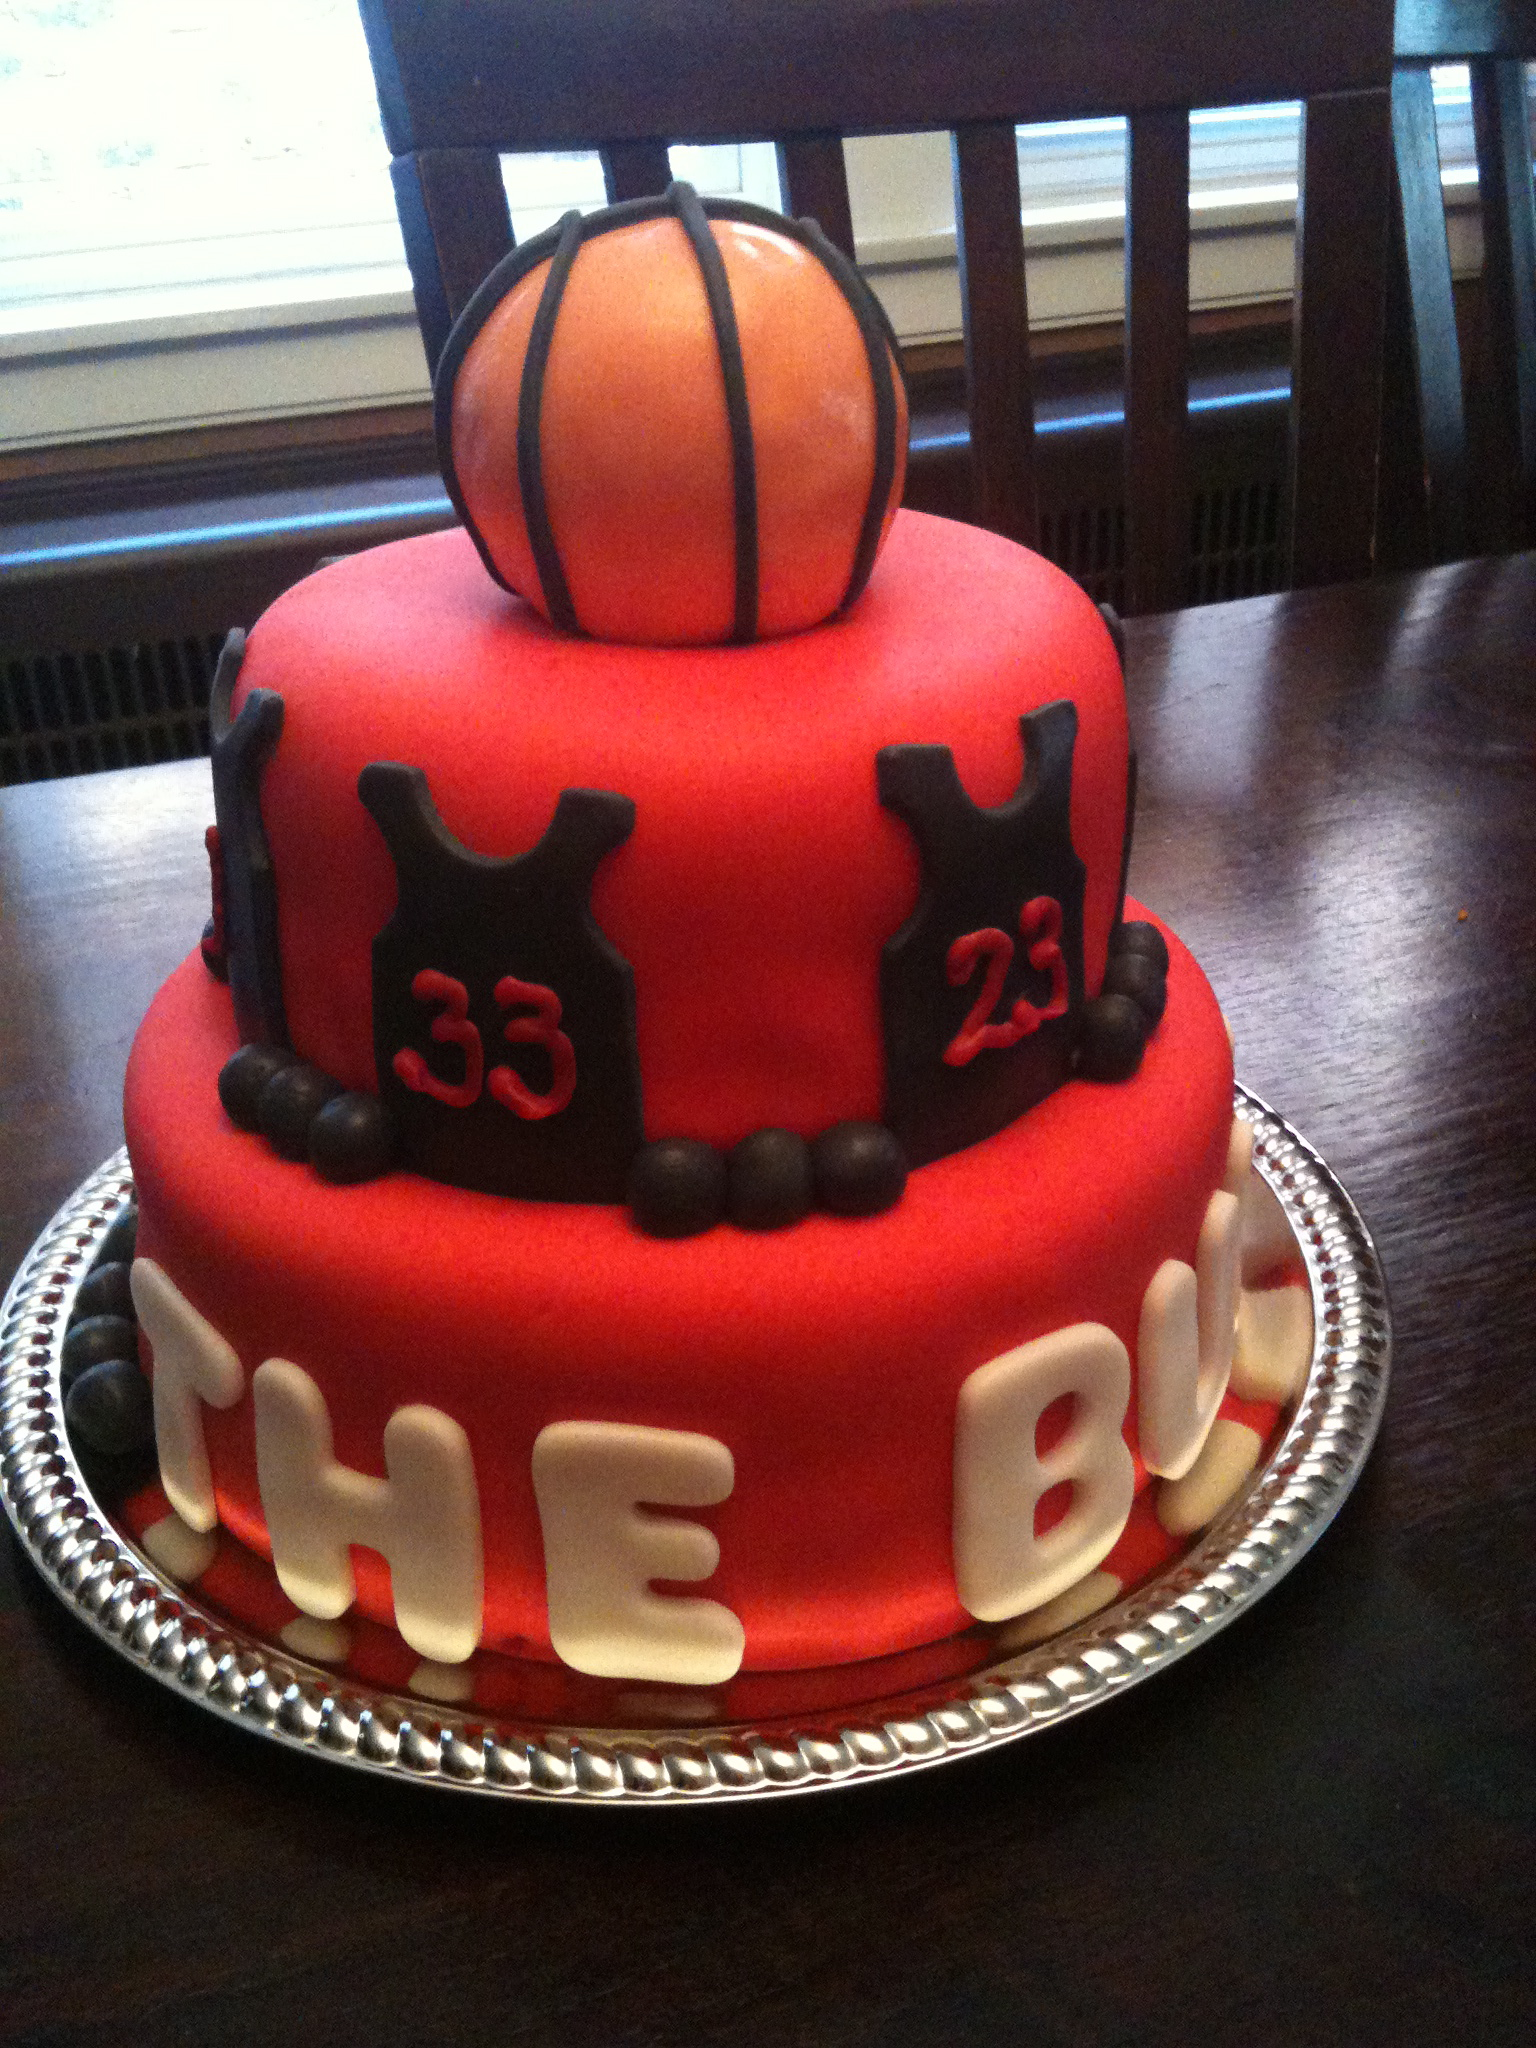 Birthday Cakes Delivered In Chicago Download